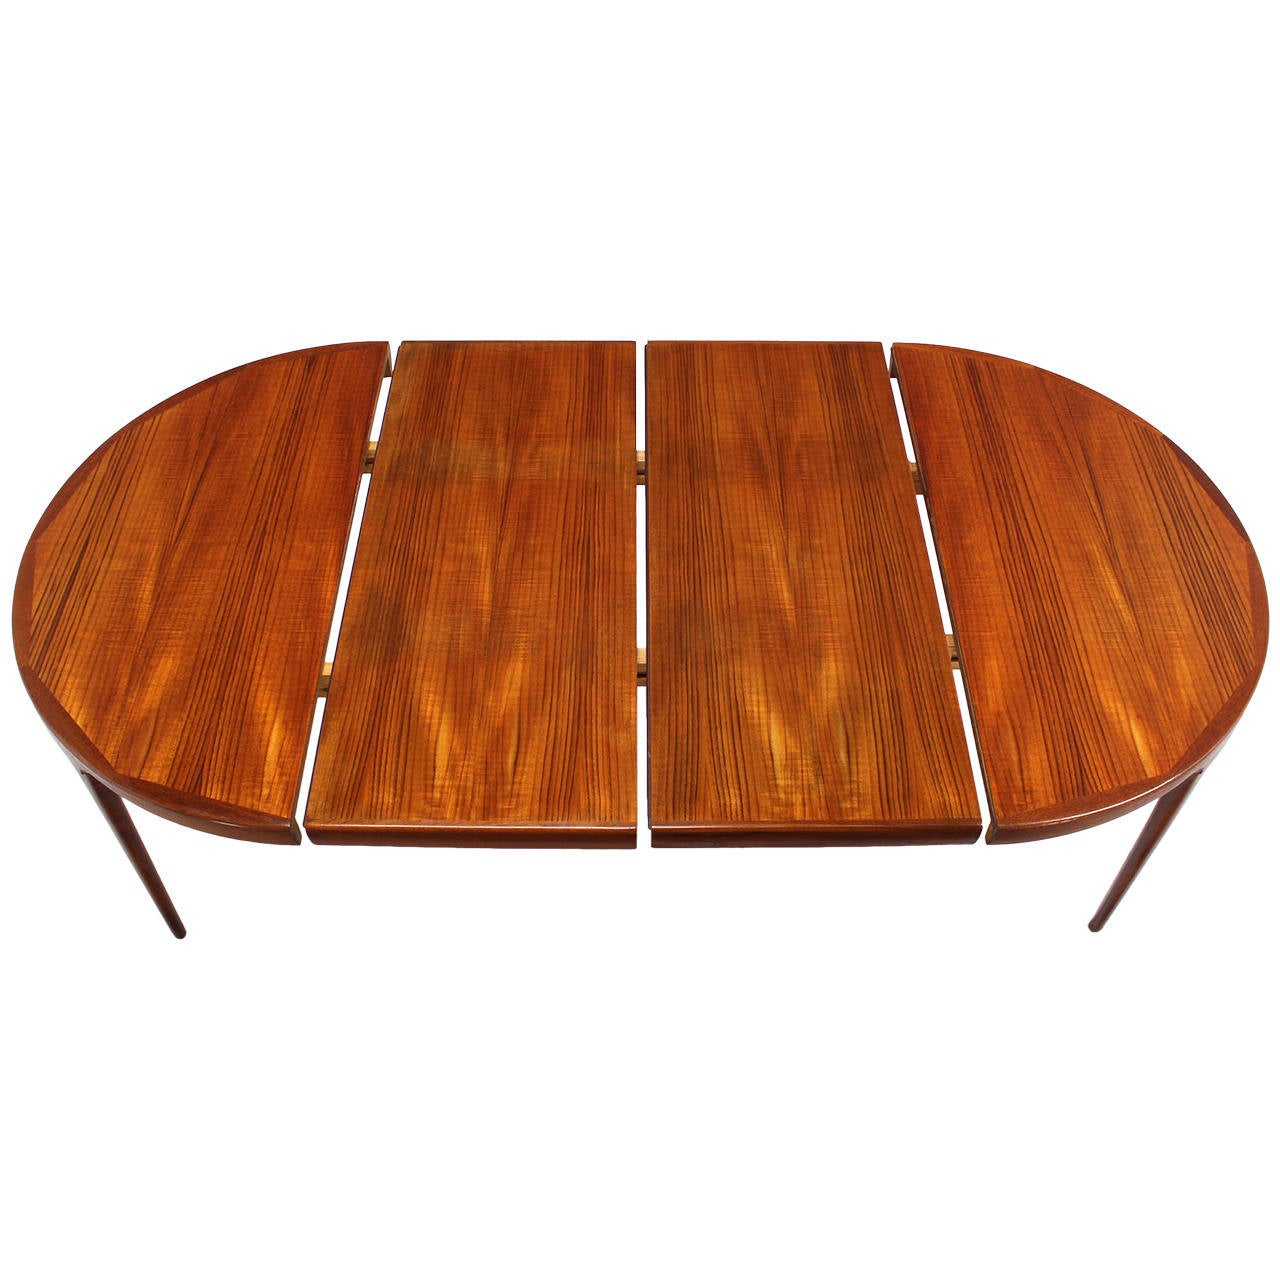 Danish Mid Century Modern Round Teak Dining Table With Two Leaves 1